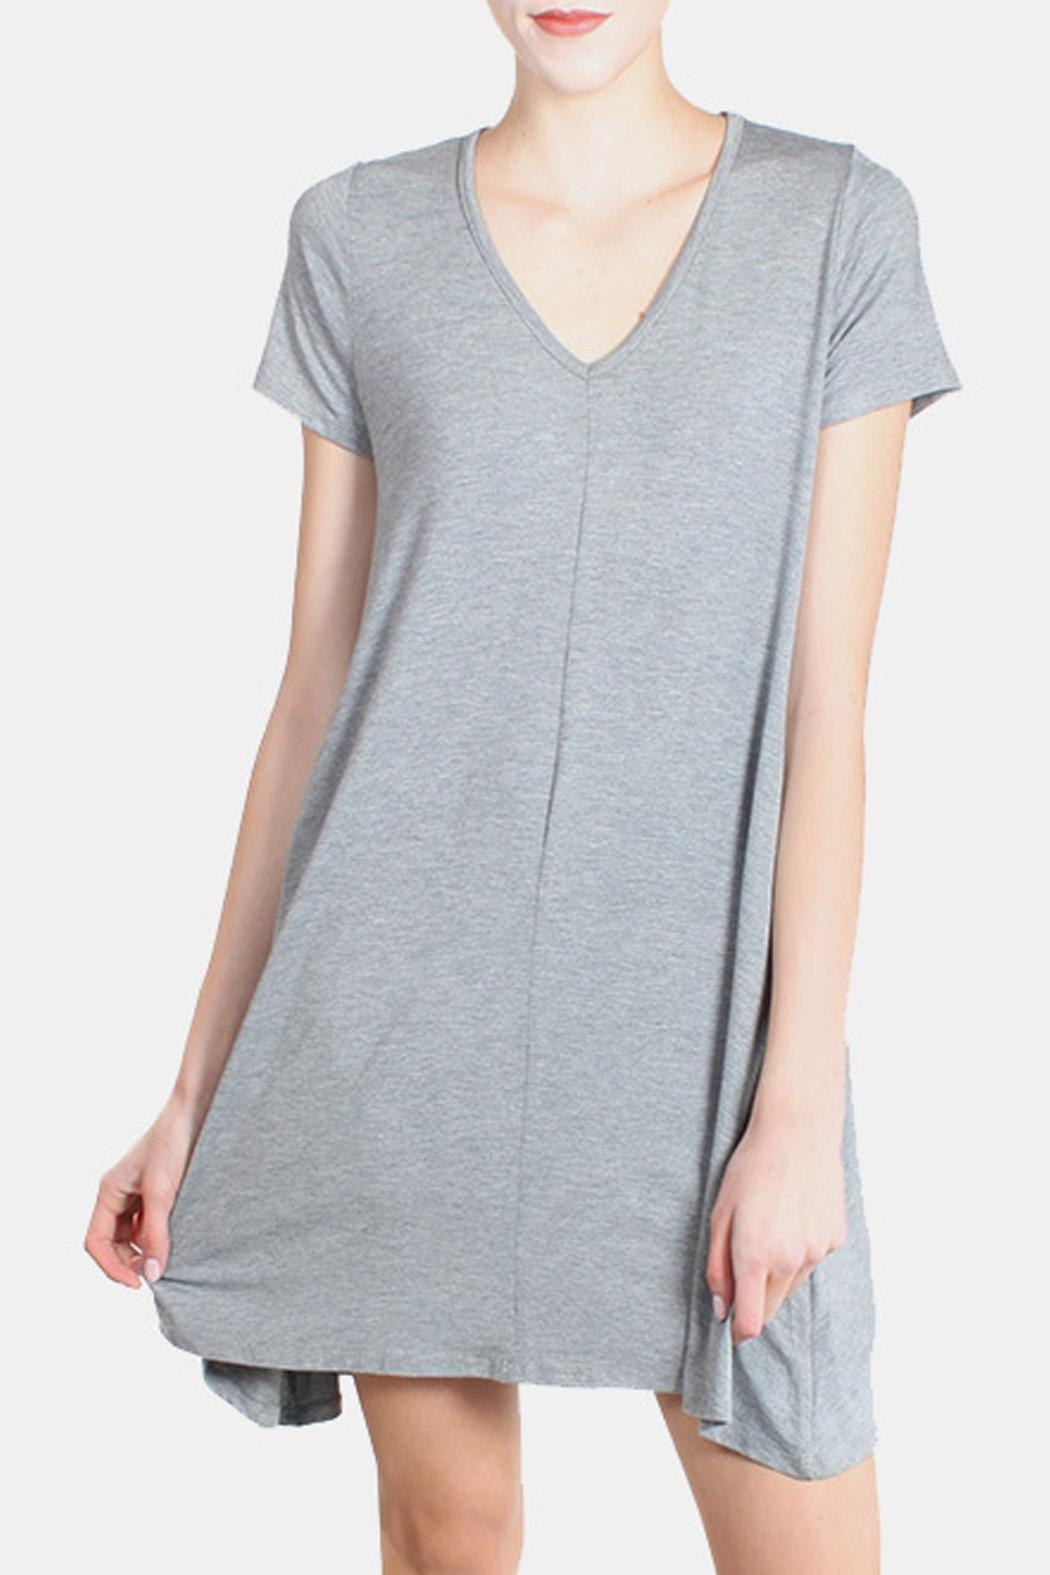 Chris & Carol Grey Essential Jersey Dress - Front Cropped Image